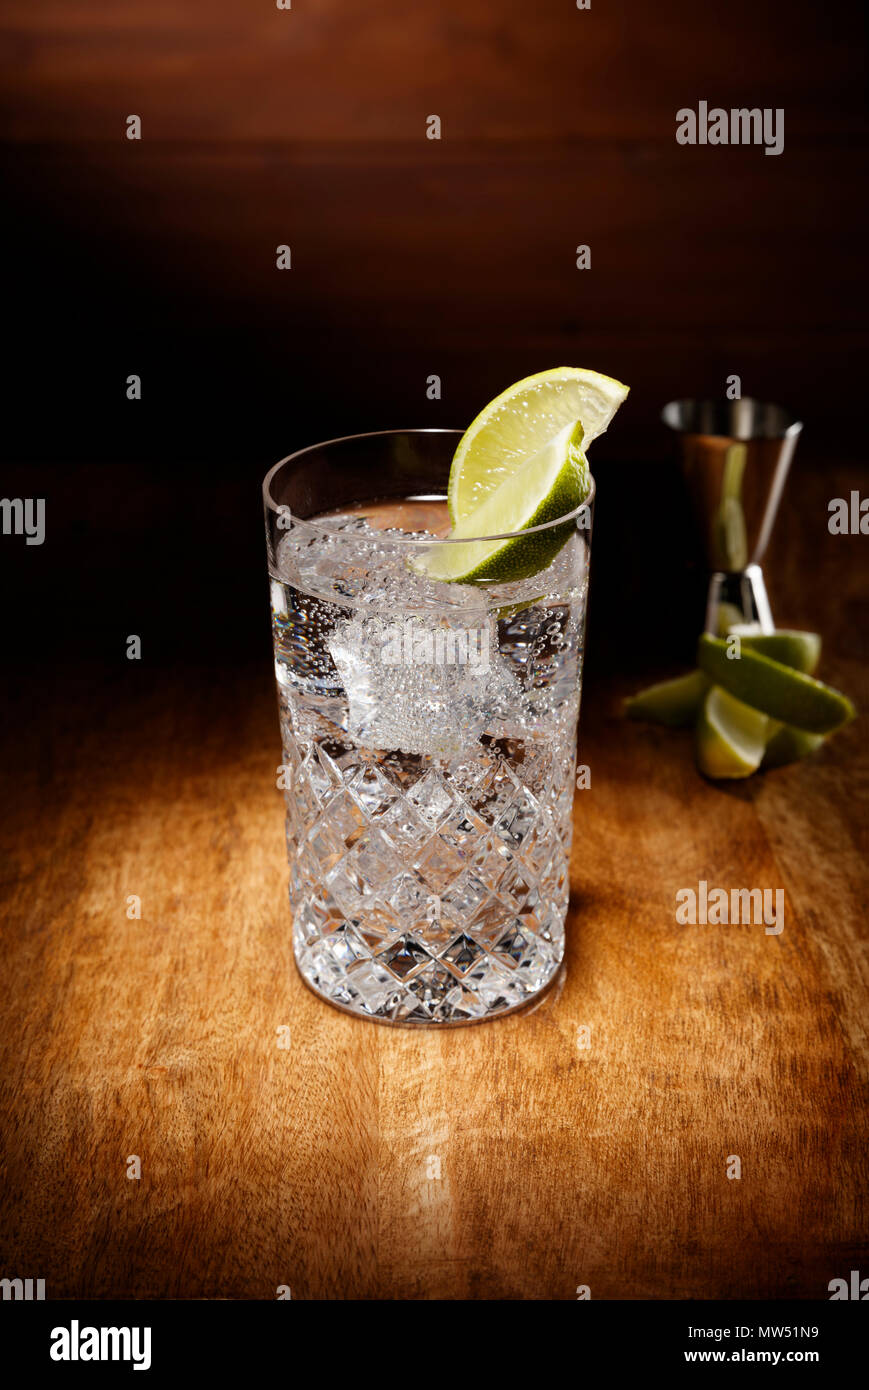 Spotlight on a crystal glasses full of the Gin and tonic cocktail, with a lime garnish, shot on a antique wooden table top. - Stock Image